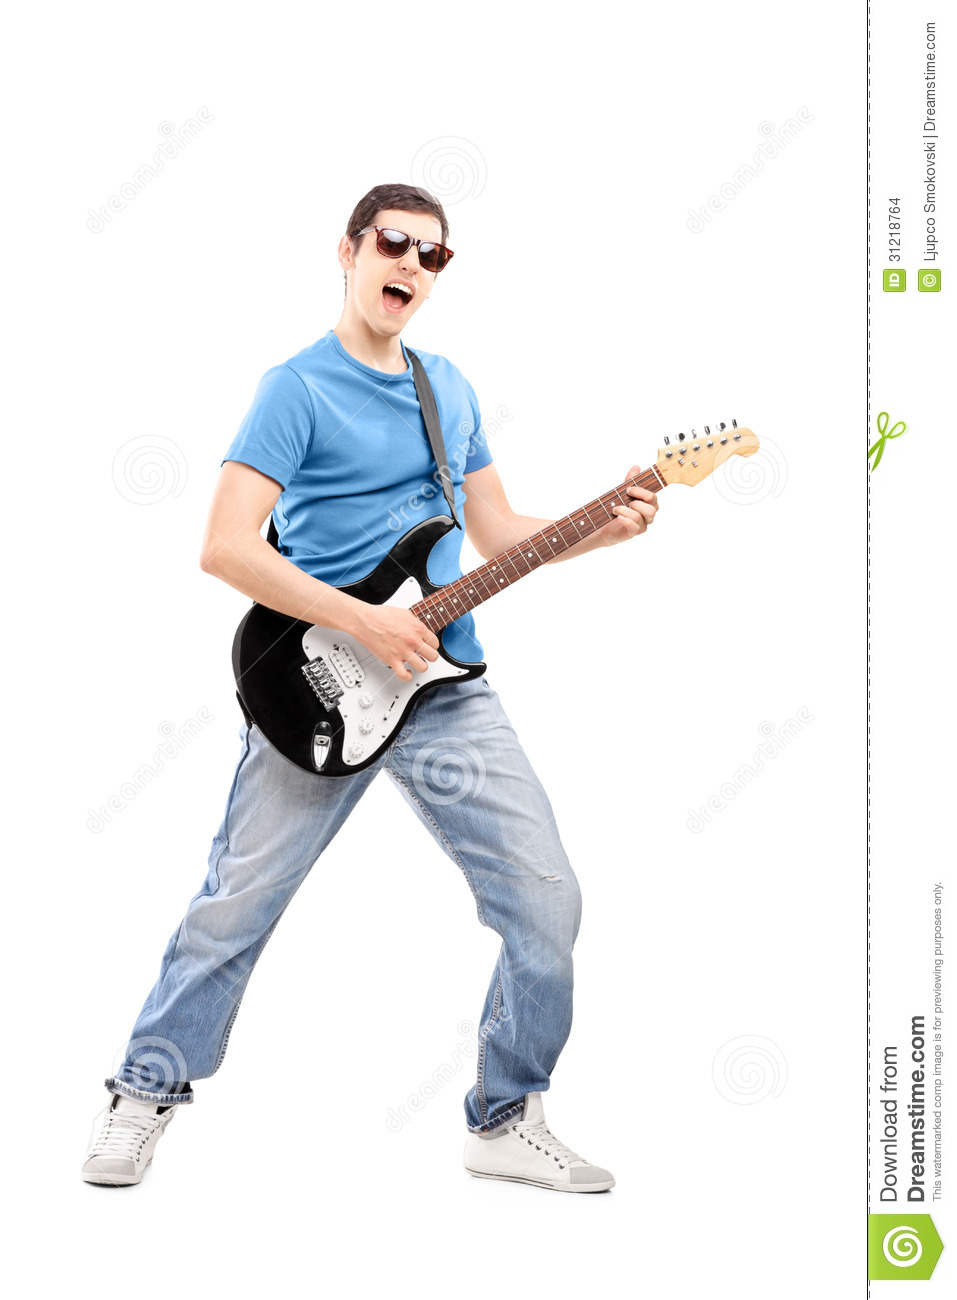 Full Length Portrait Of A Male Musician Playing An